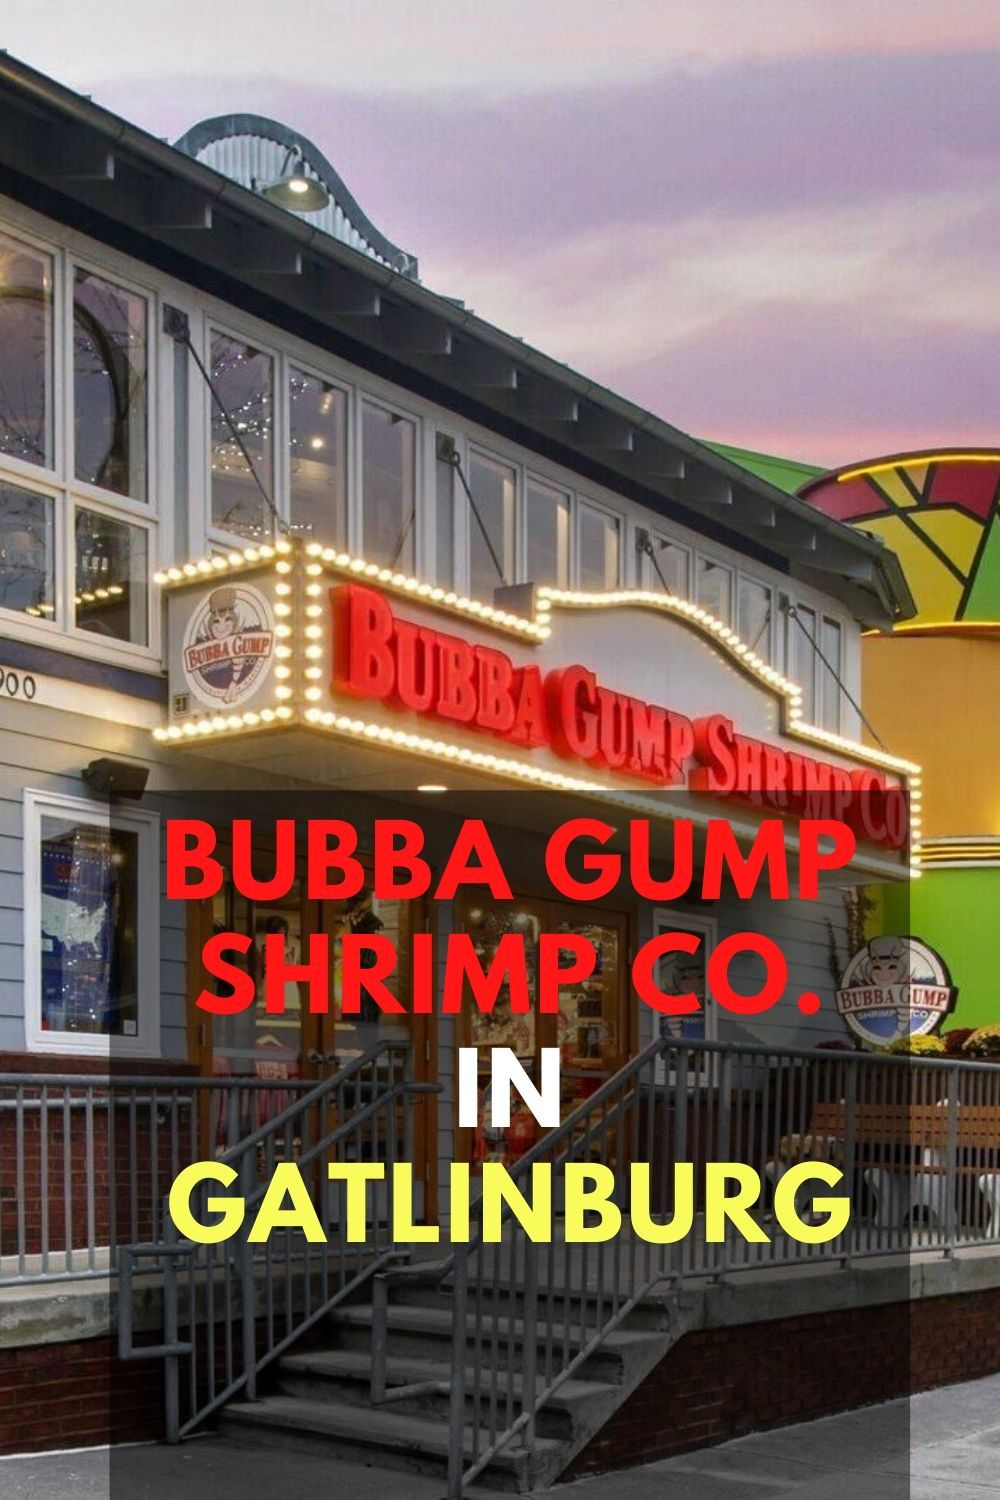 Bubba Gump Shrimp Co In Gatlinburg In 2020 Bubba Gump Shrimp Gatlinburg Gatlinburg Restaurants